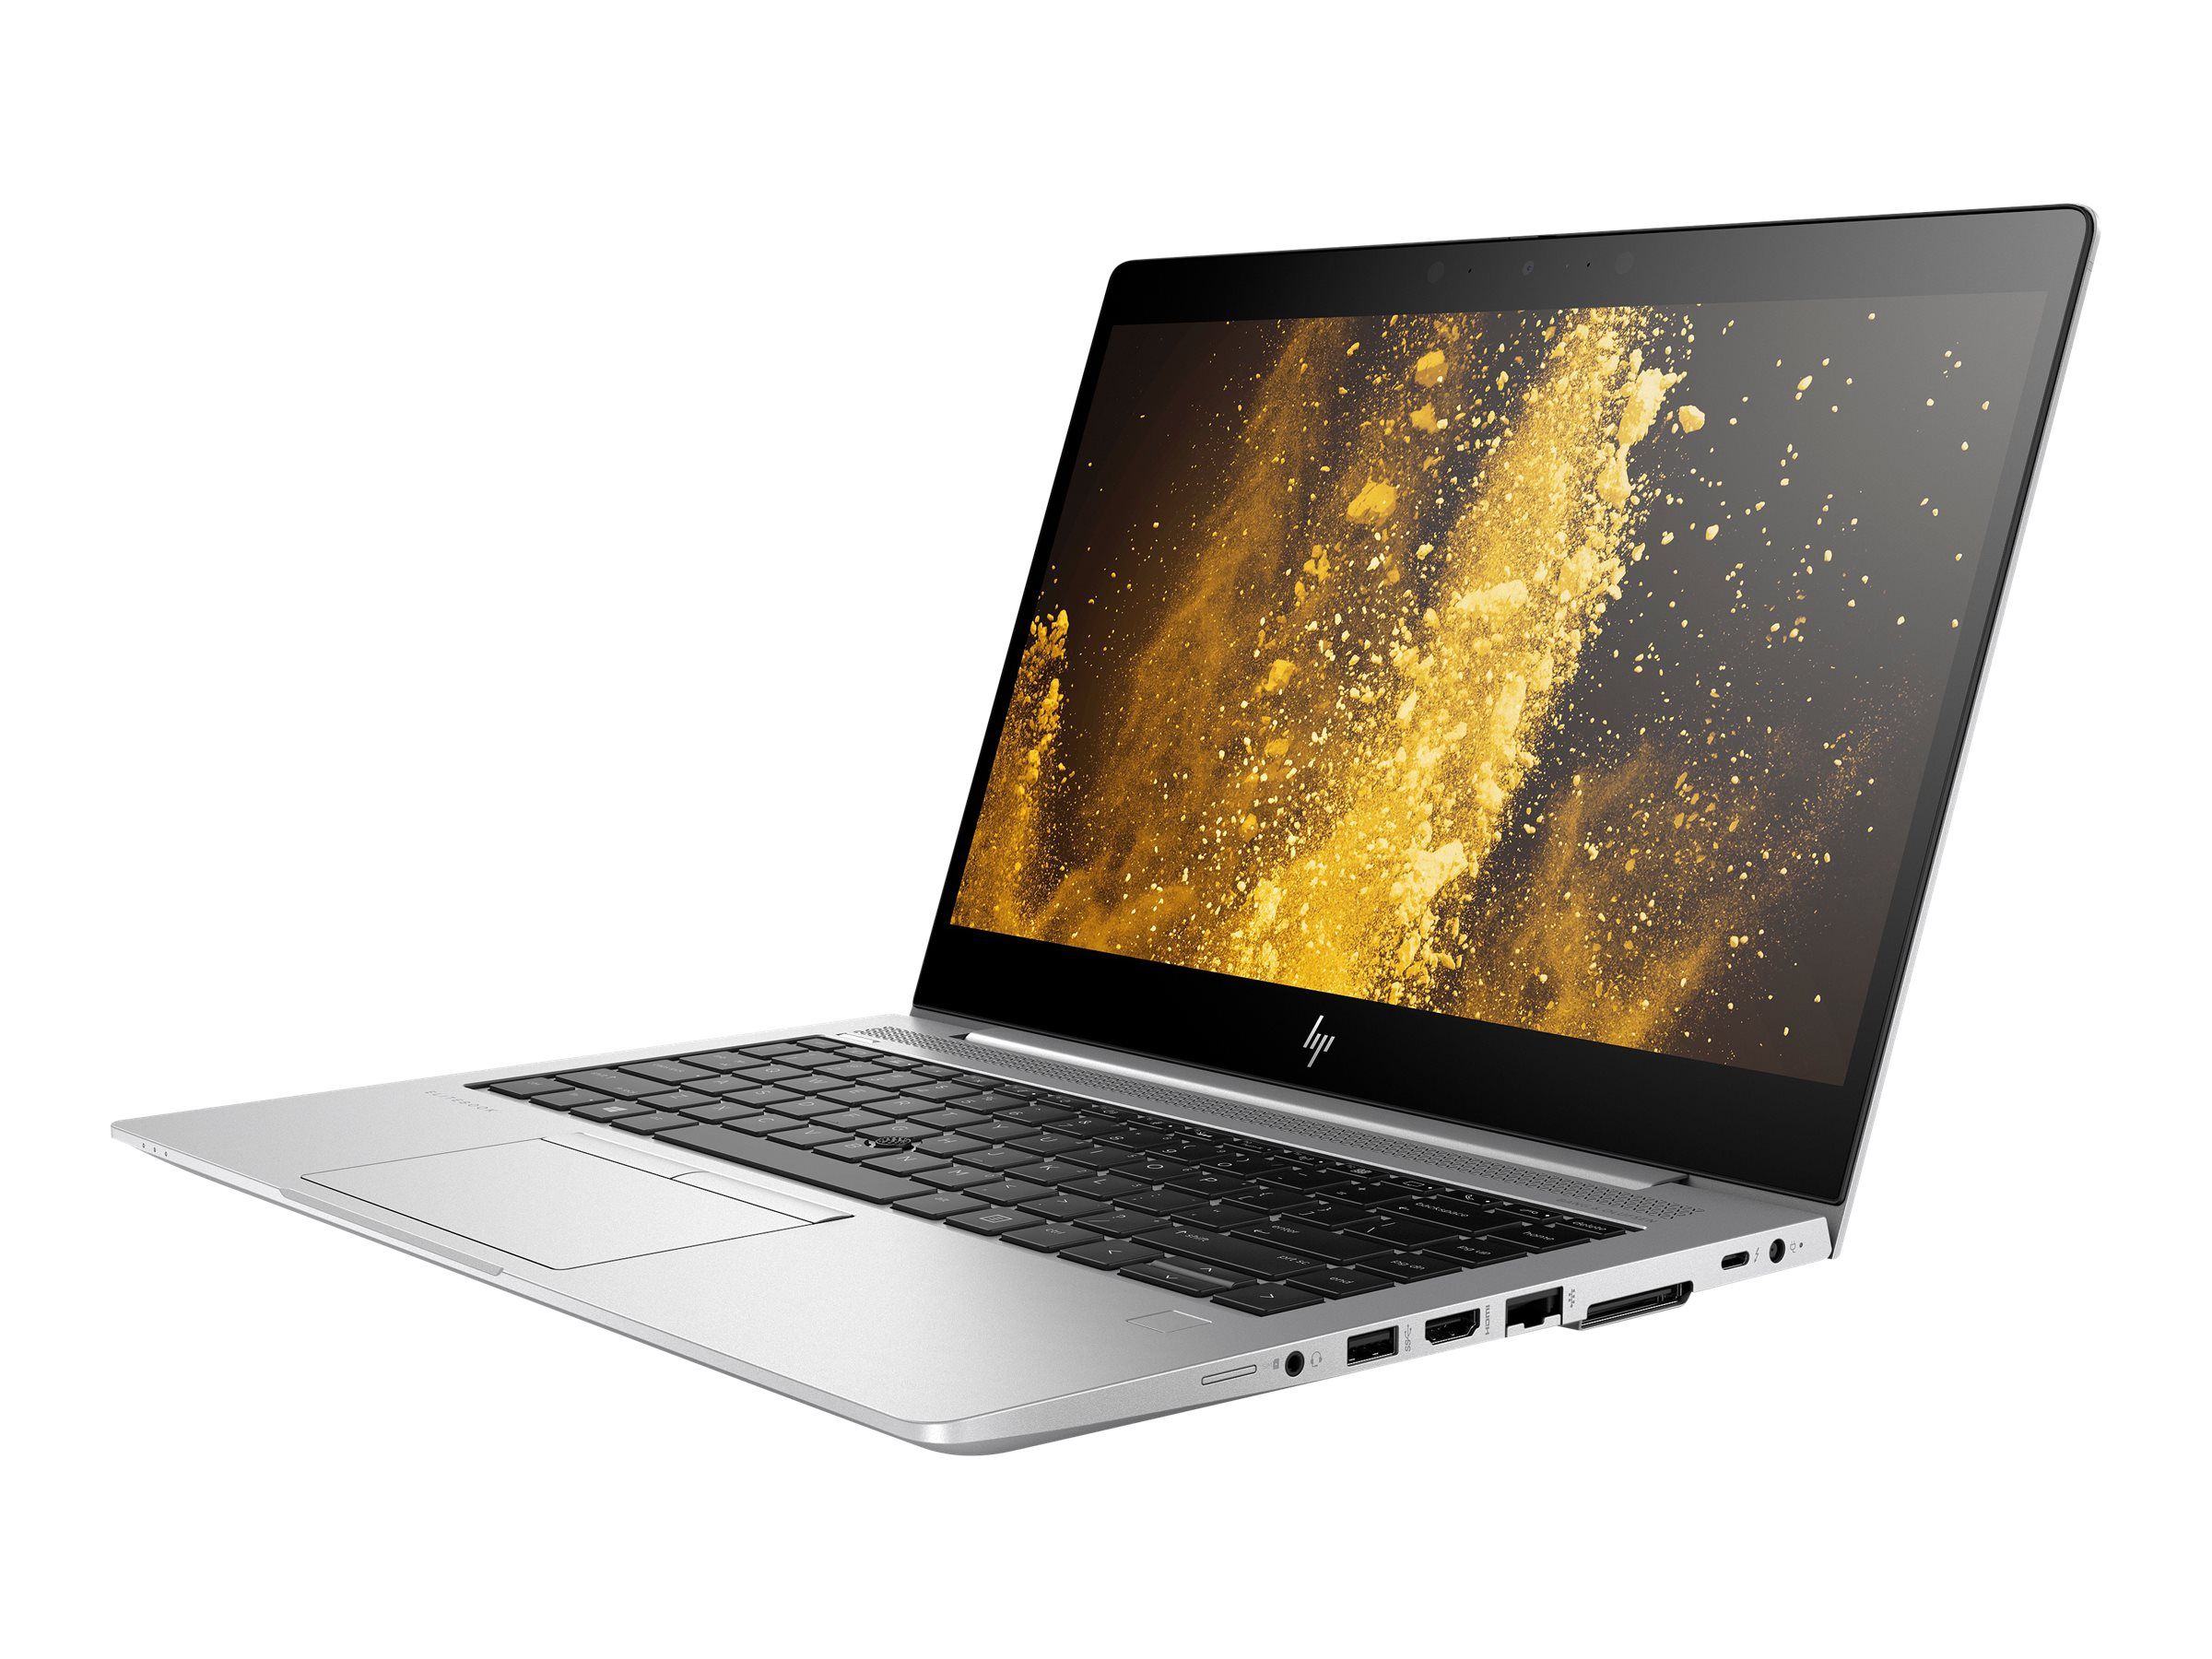 Hp elitebook 840 g6 core i5 8265u 1 6 ghz win 10 pro 64 bit 8 gb ram 512 gb ssd 32 gb ssd cache nvme 35 56 cm 14 ips 1920 x 1080 full hd 11803202 7yl41ea abd